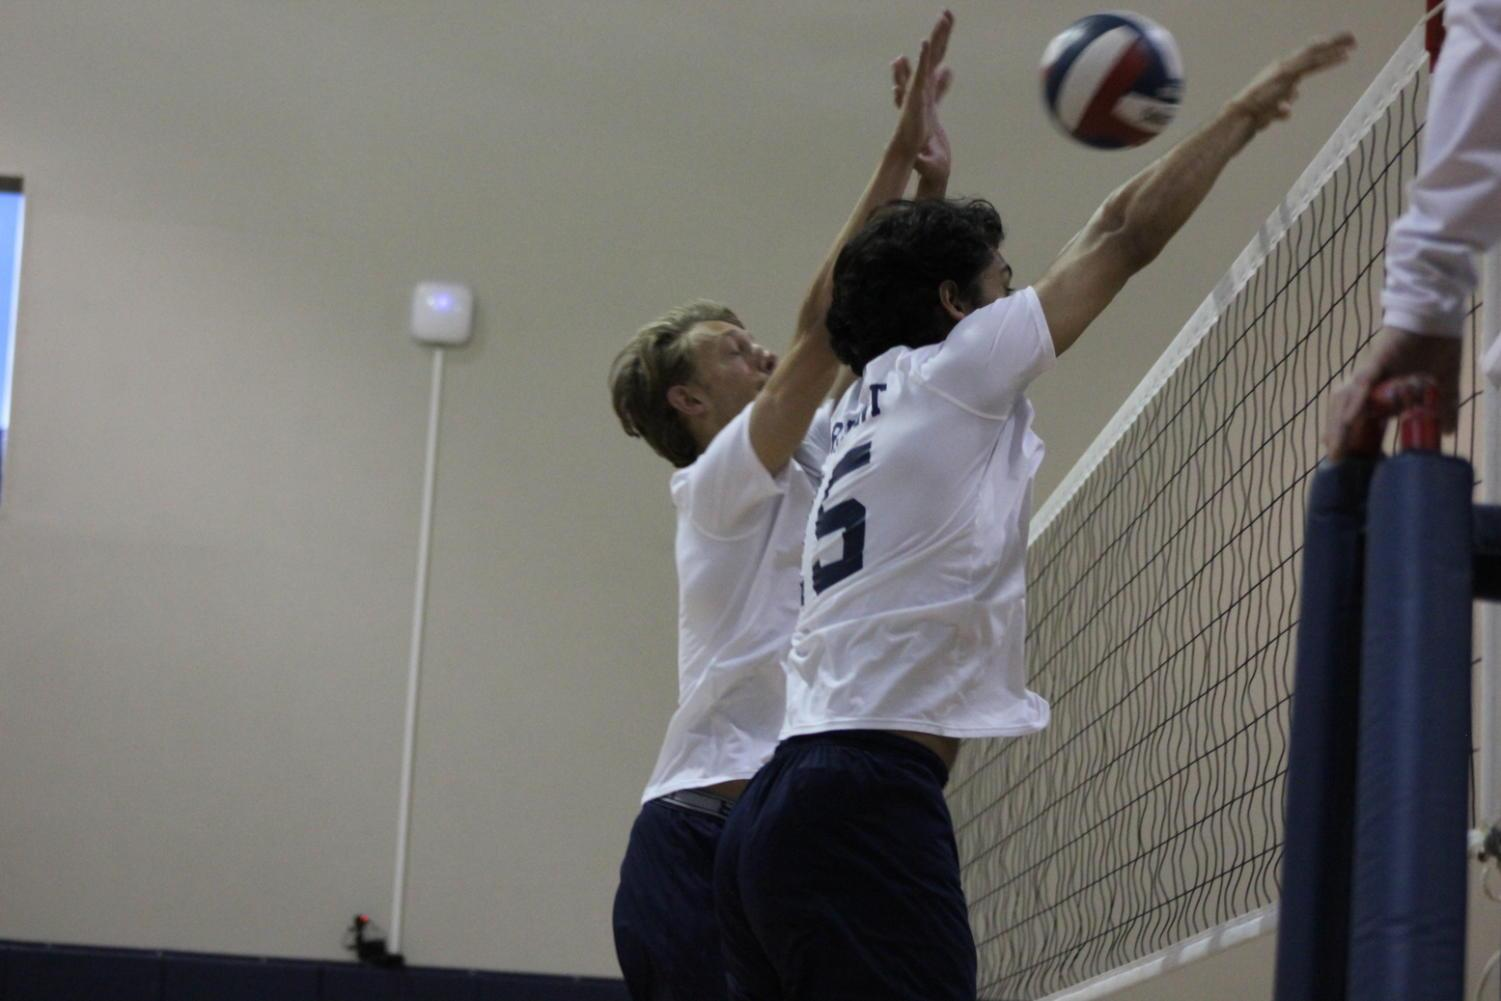 Haider+and+Bouchard+block+a+spike+against+the+Vikings.+